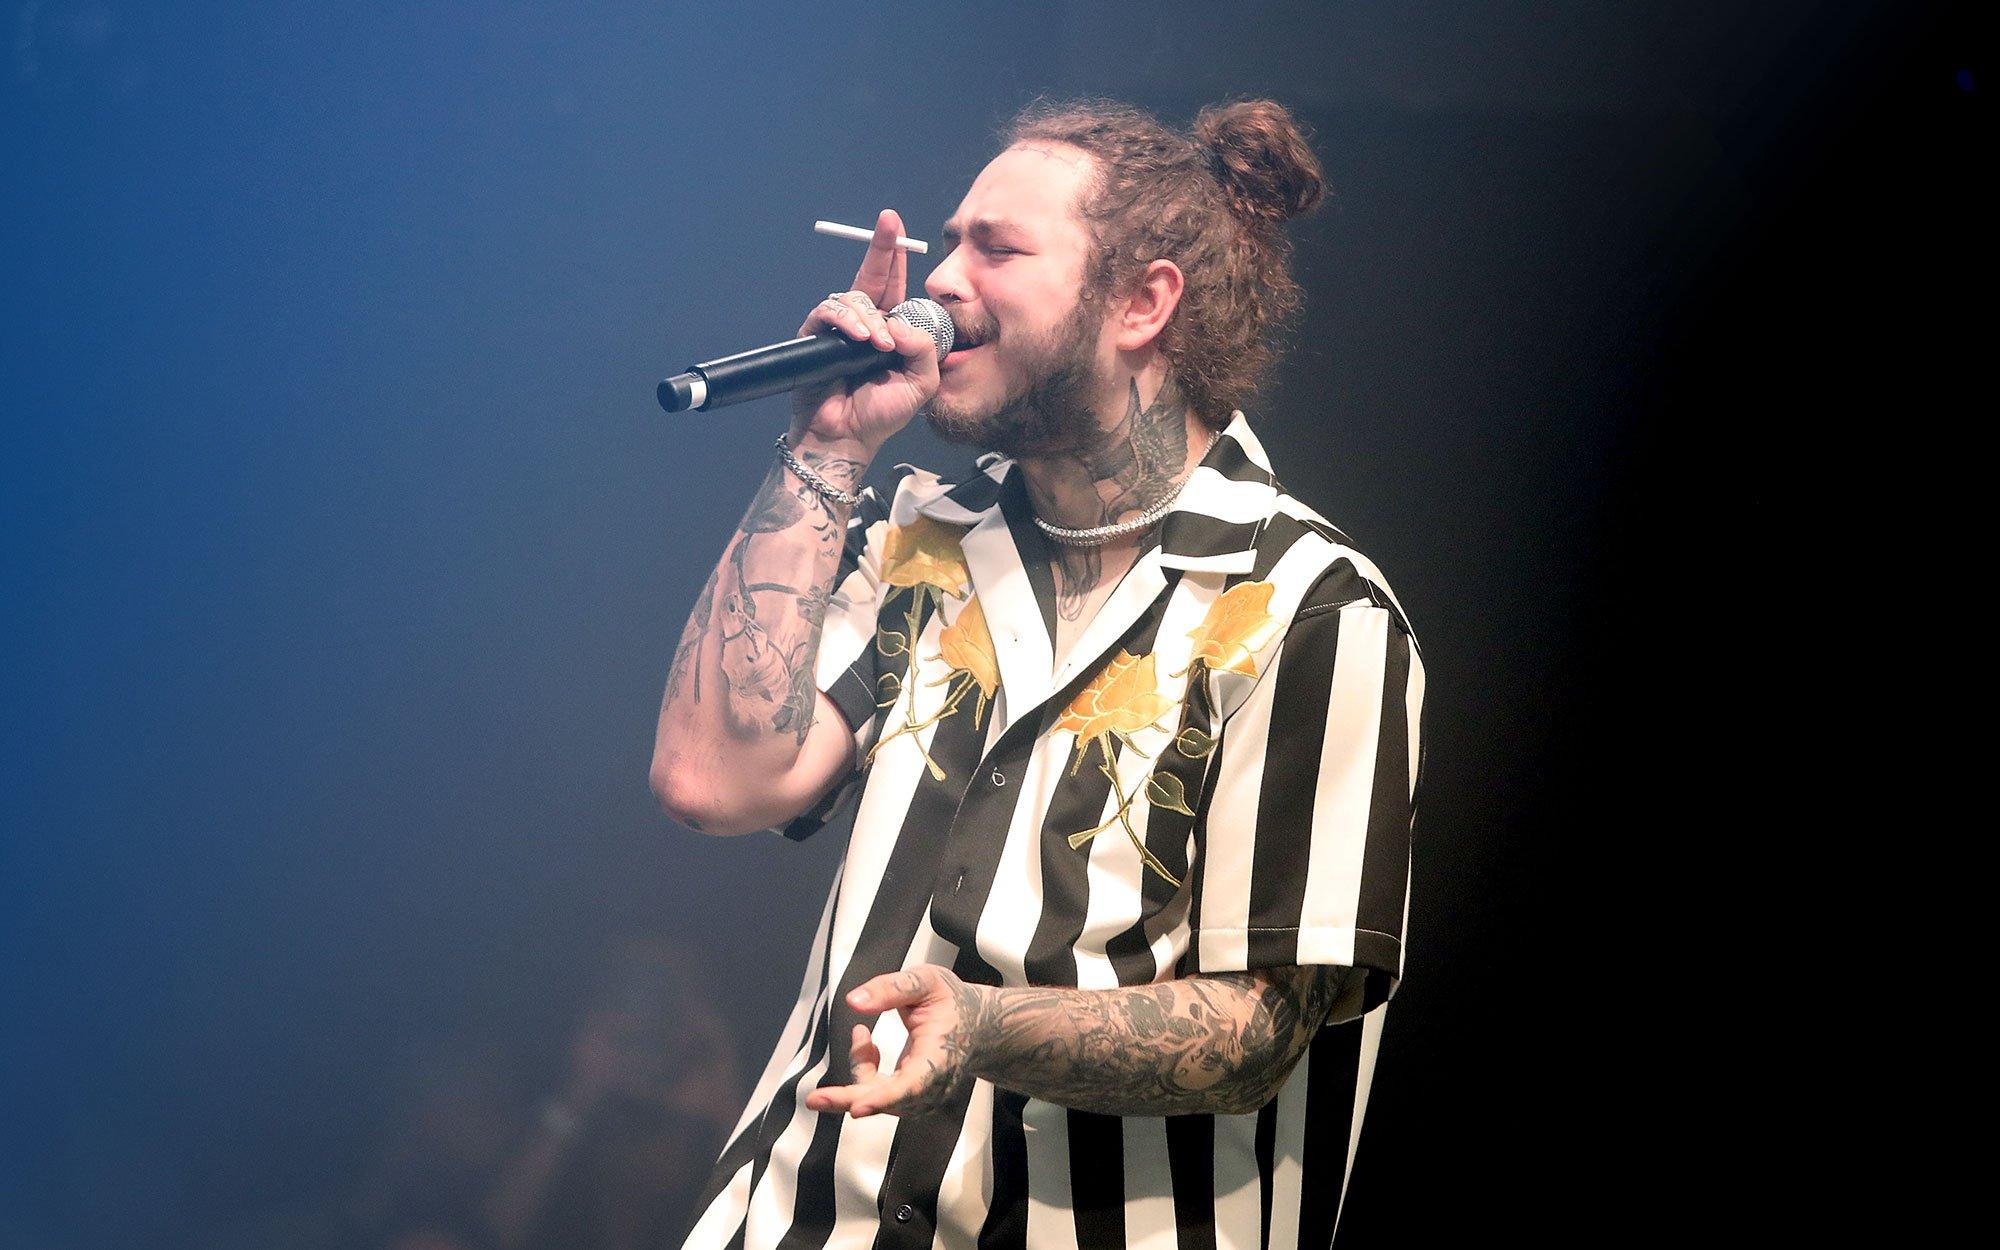 Post Malone Computer 2019 Wallpapers - Wallpaper Cave